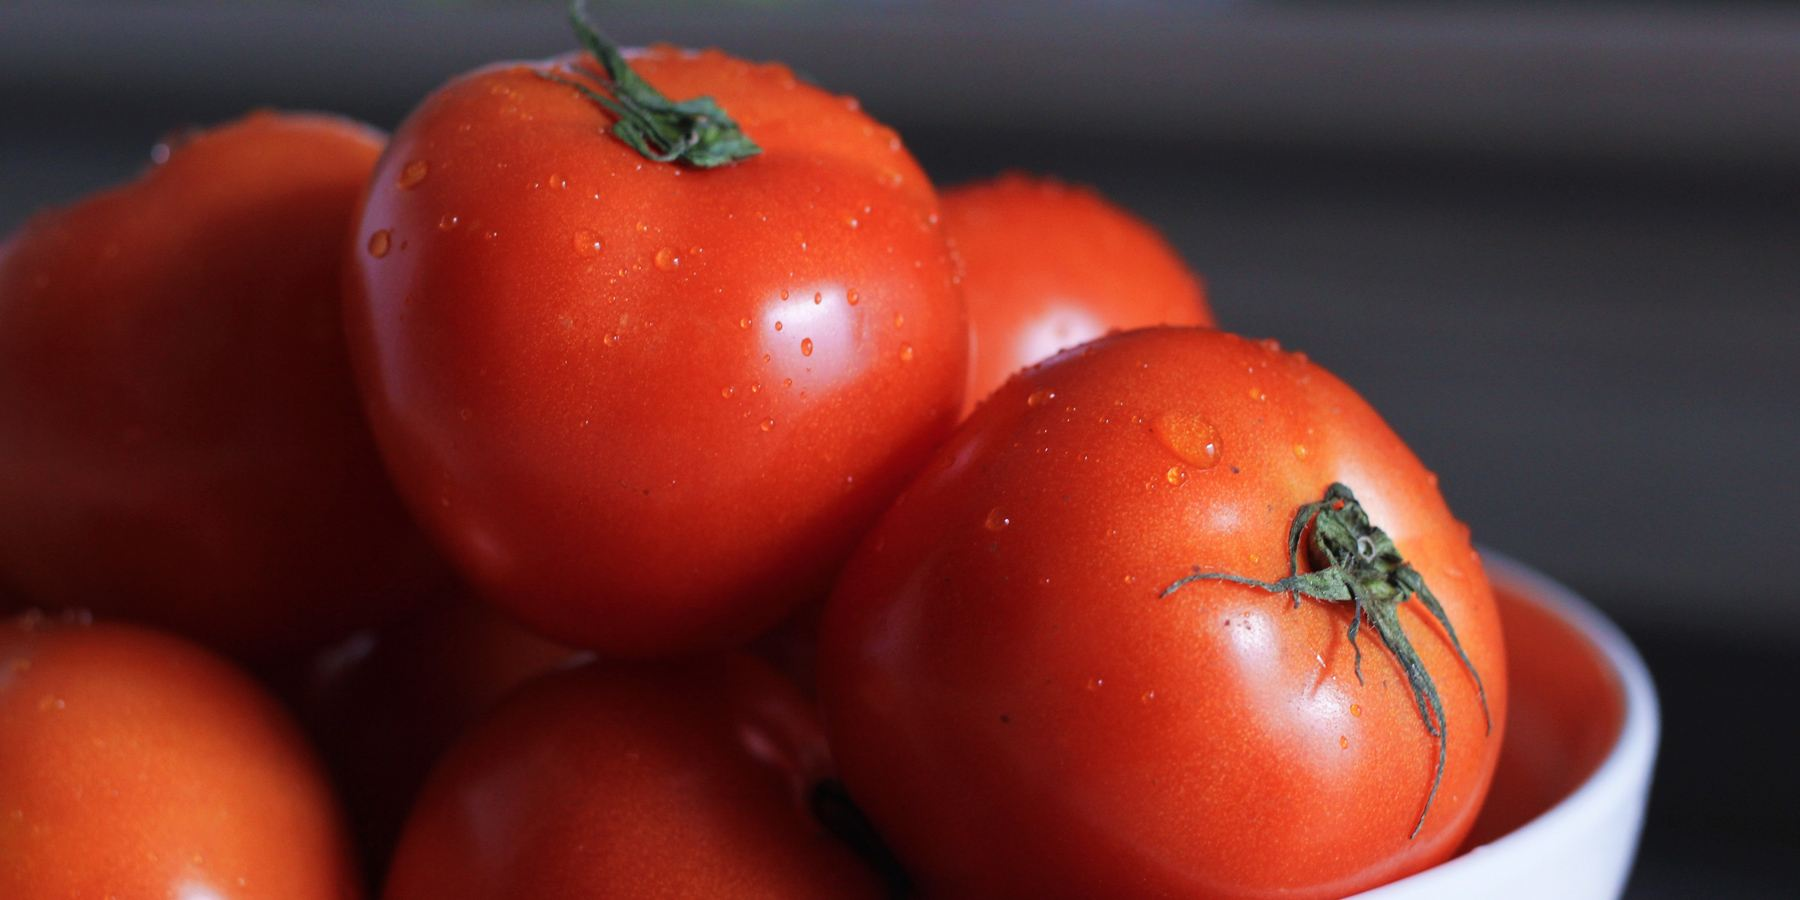 Juicy Tomatoes from HEILBrice